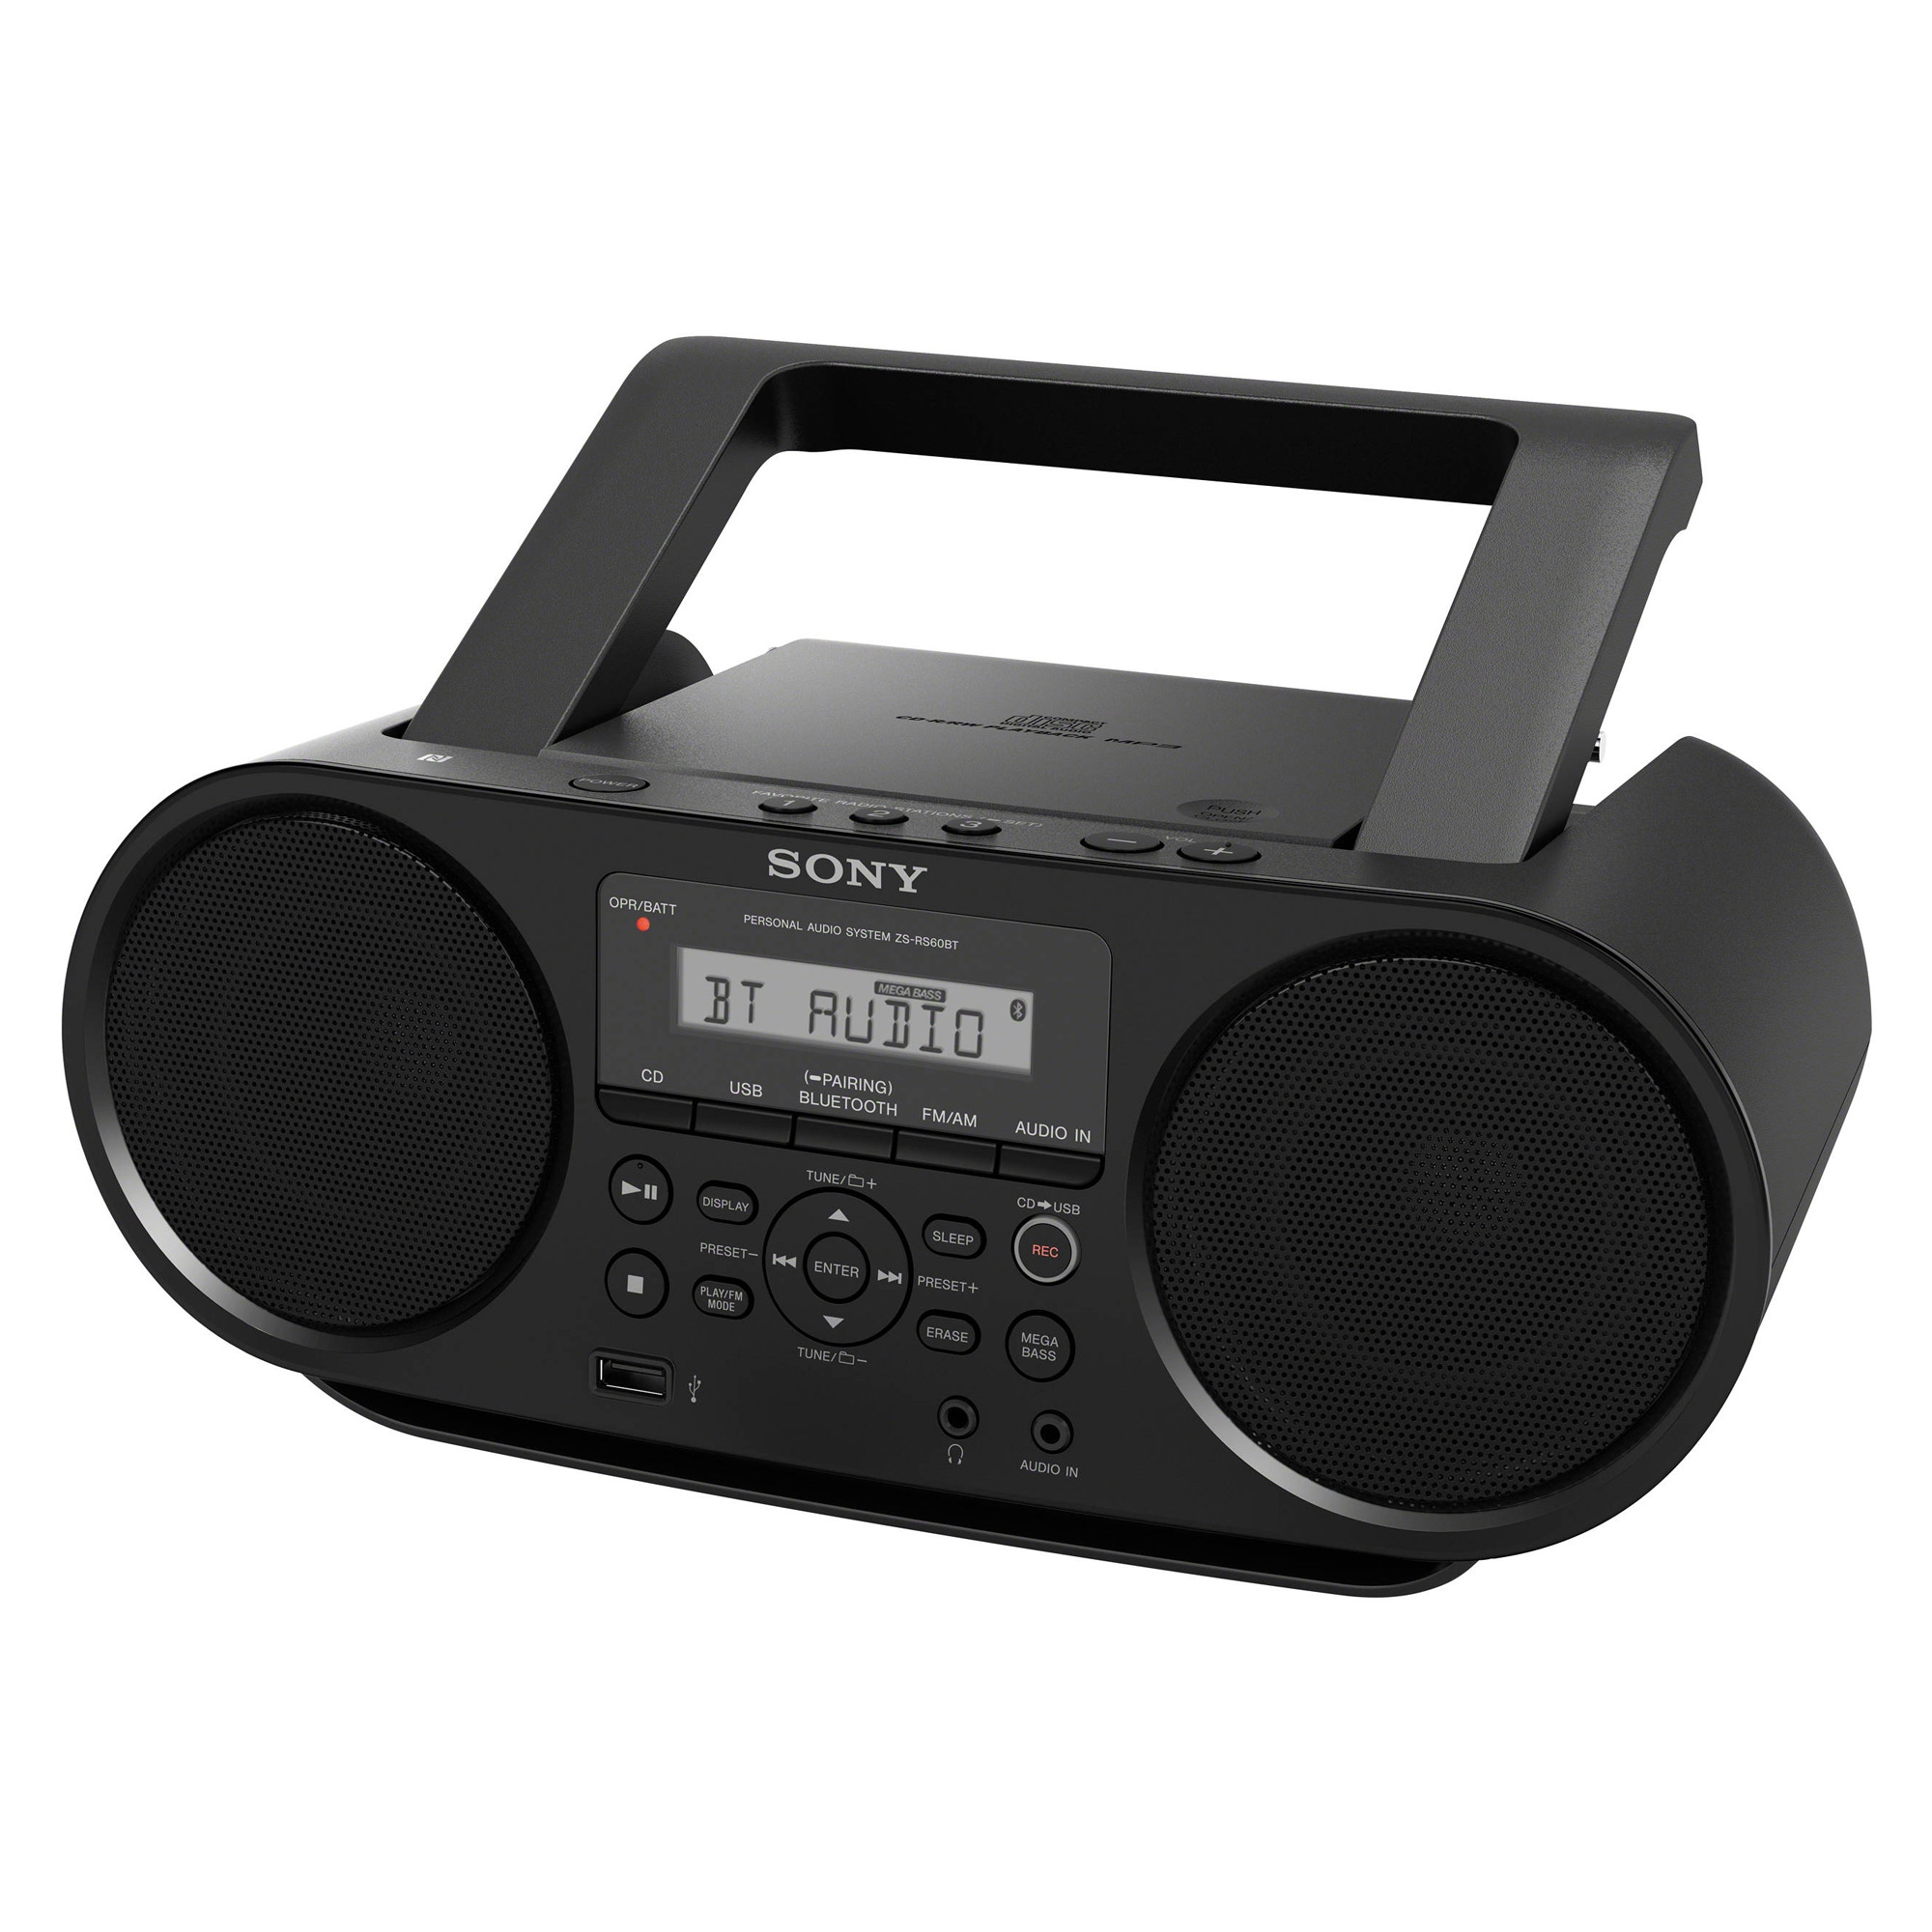 Sony ZSRS60BT Cd/mp3 Am/fm Boombox With Bluetooth And Nfc